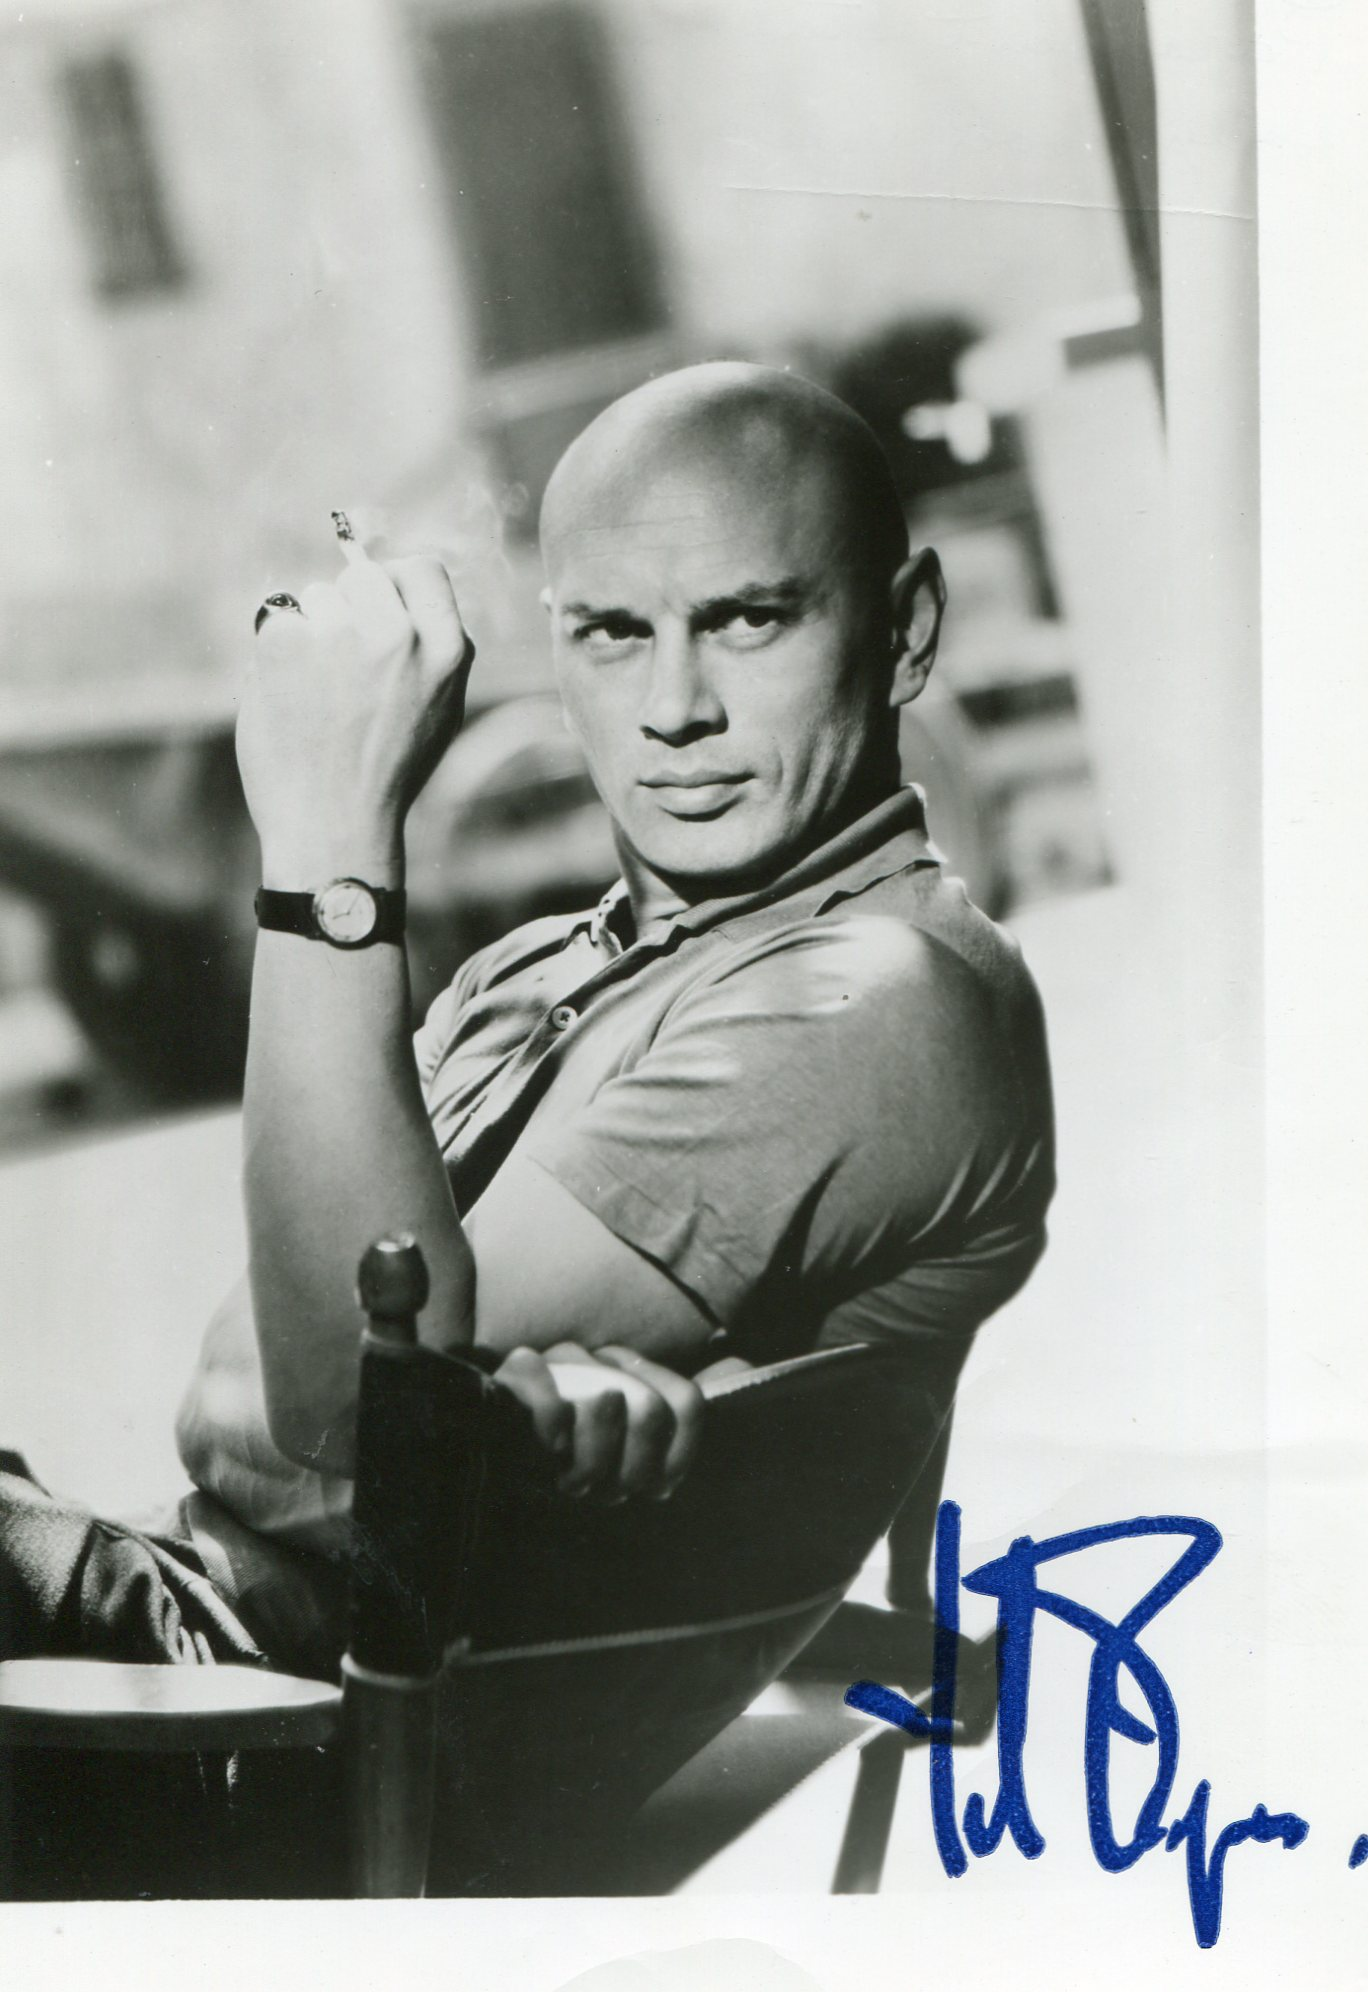 yul brynner archives movies autographed portraits. Black Bedroom Furniture Sets. Home Design Ideas